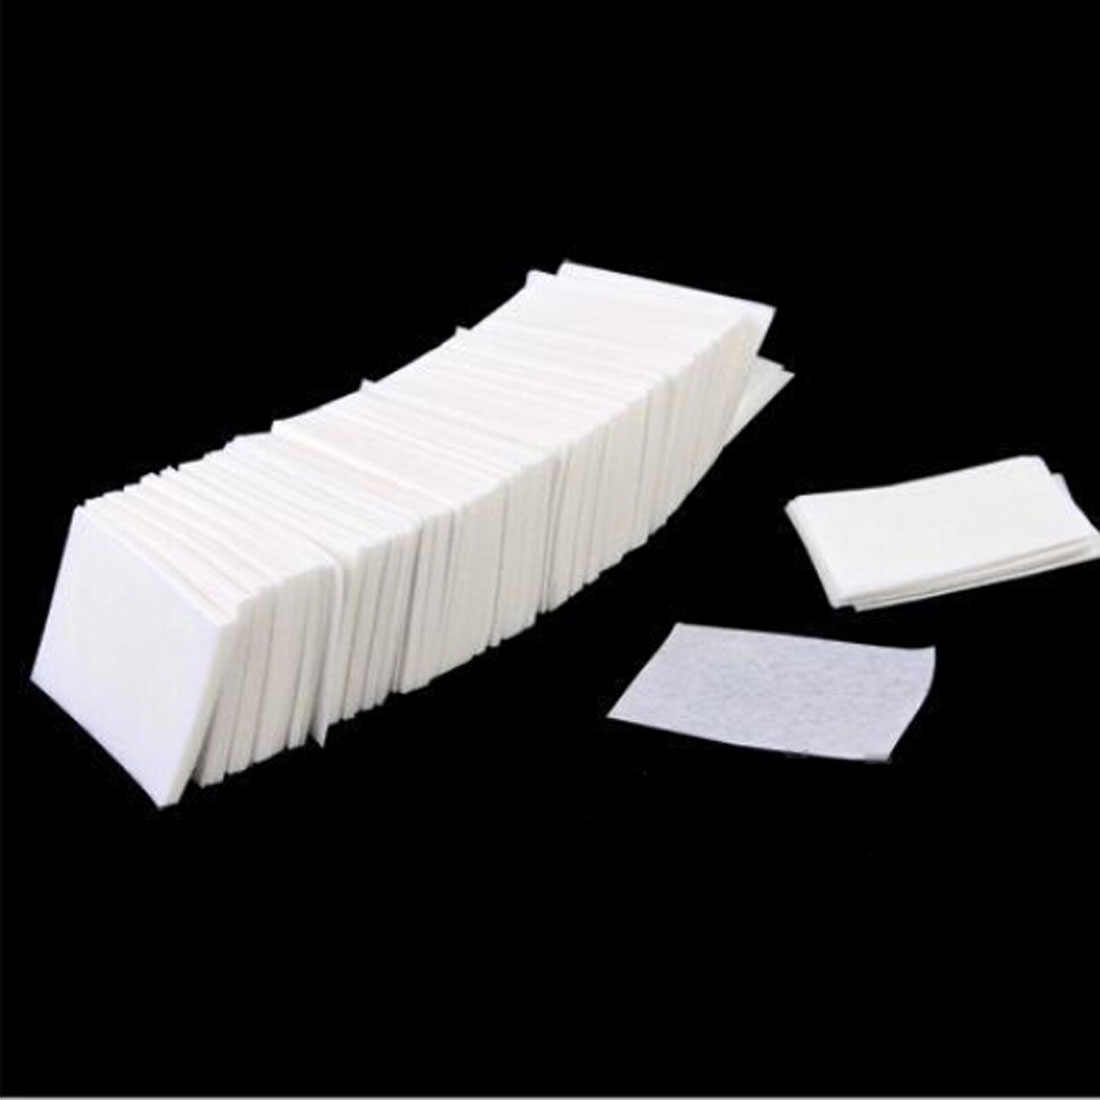 Hot Sale 400pcs/set Nail Art Wipes Manicure Polish Wipes Cotton Lint Cotton Pads Paper Acrylic Gel Tips